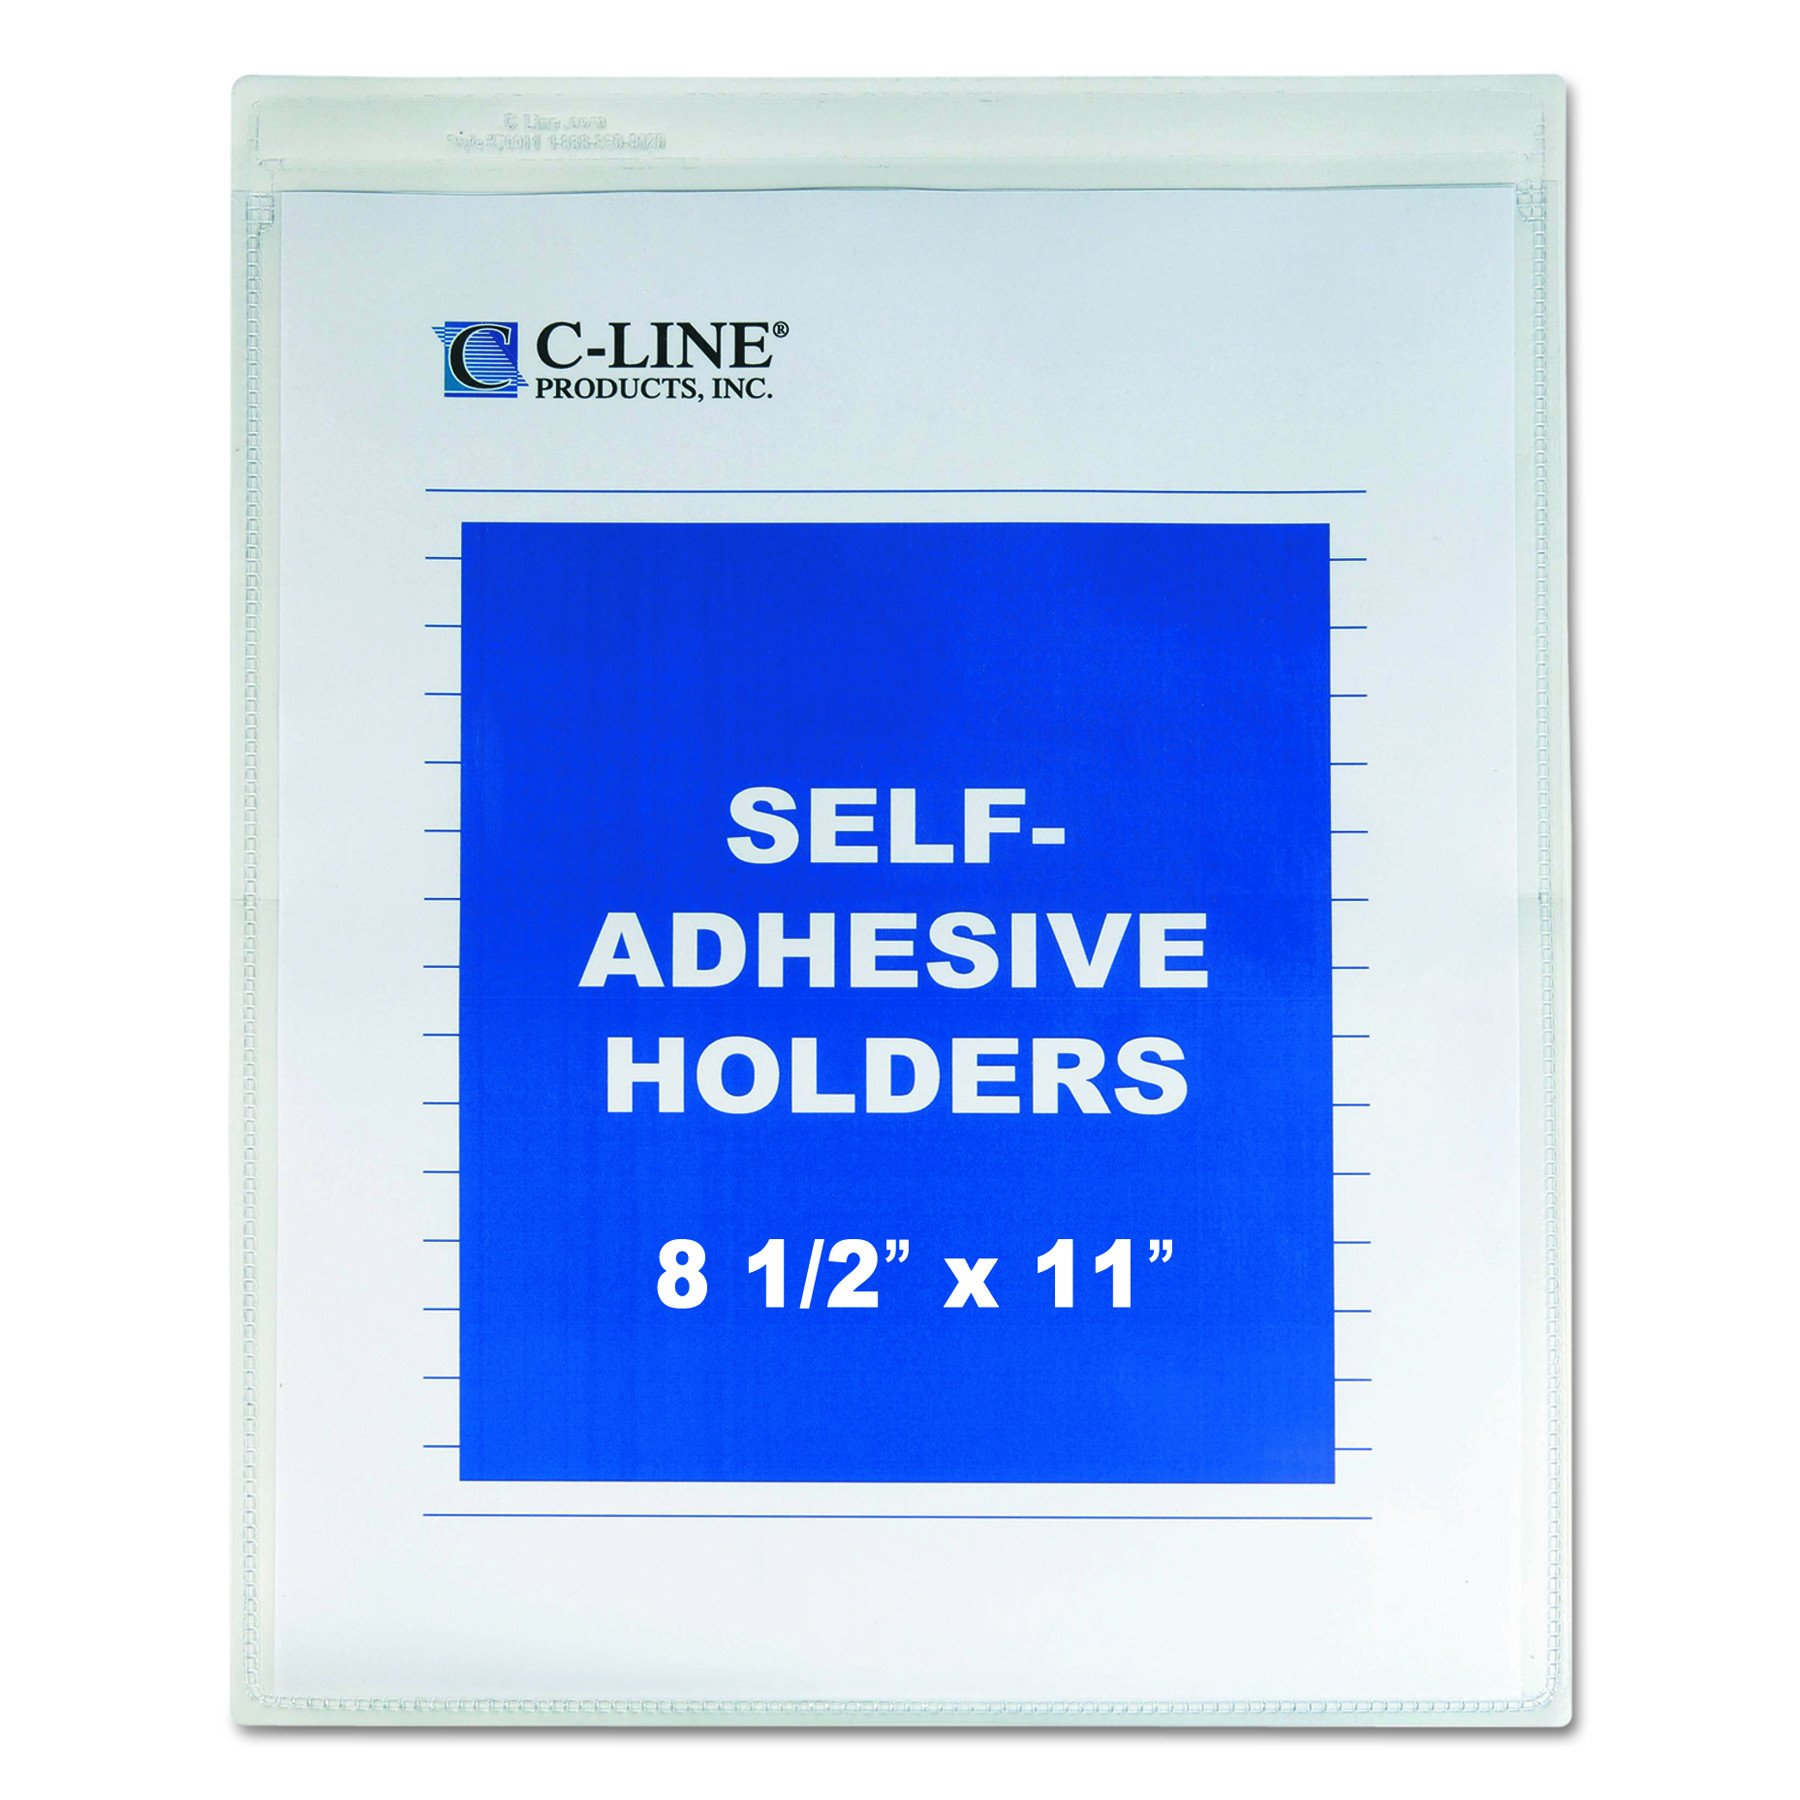 C-Line Self-Adhesive Shop Ticket Holders, 8.5 x 11 Inches, Clear, 50 per Box (70911) by C-Line